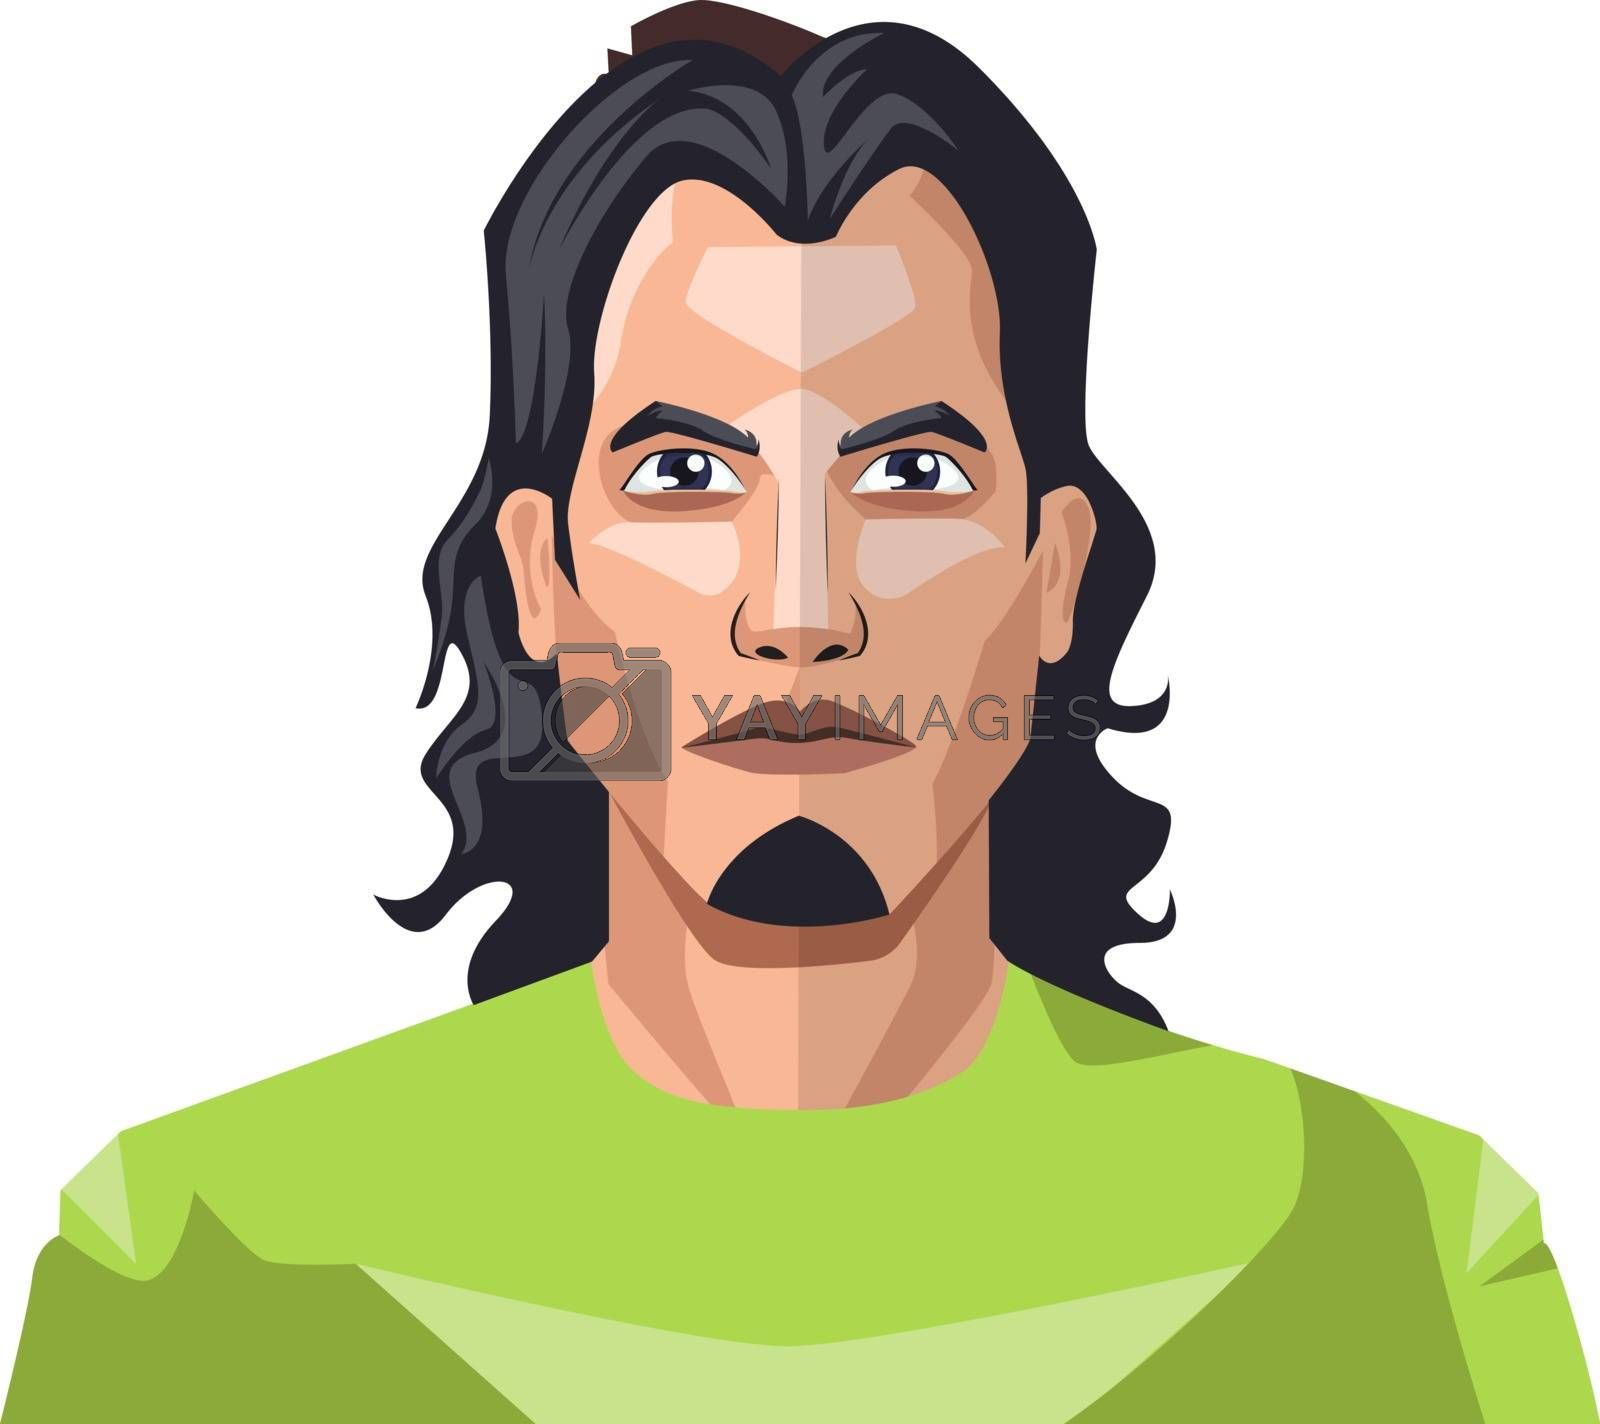 Royalty free image of Handsome man with a long black hair and small beard illustration by Morphart